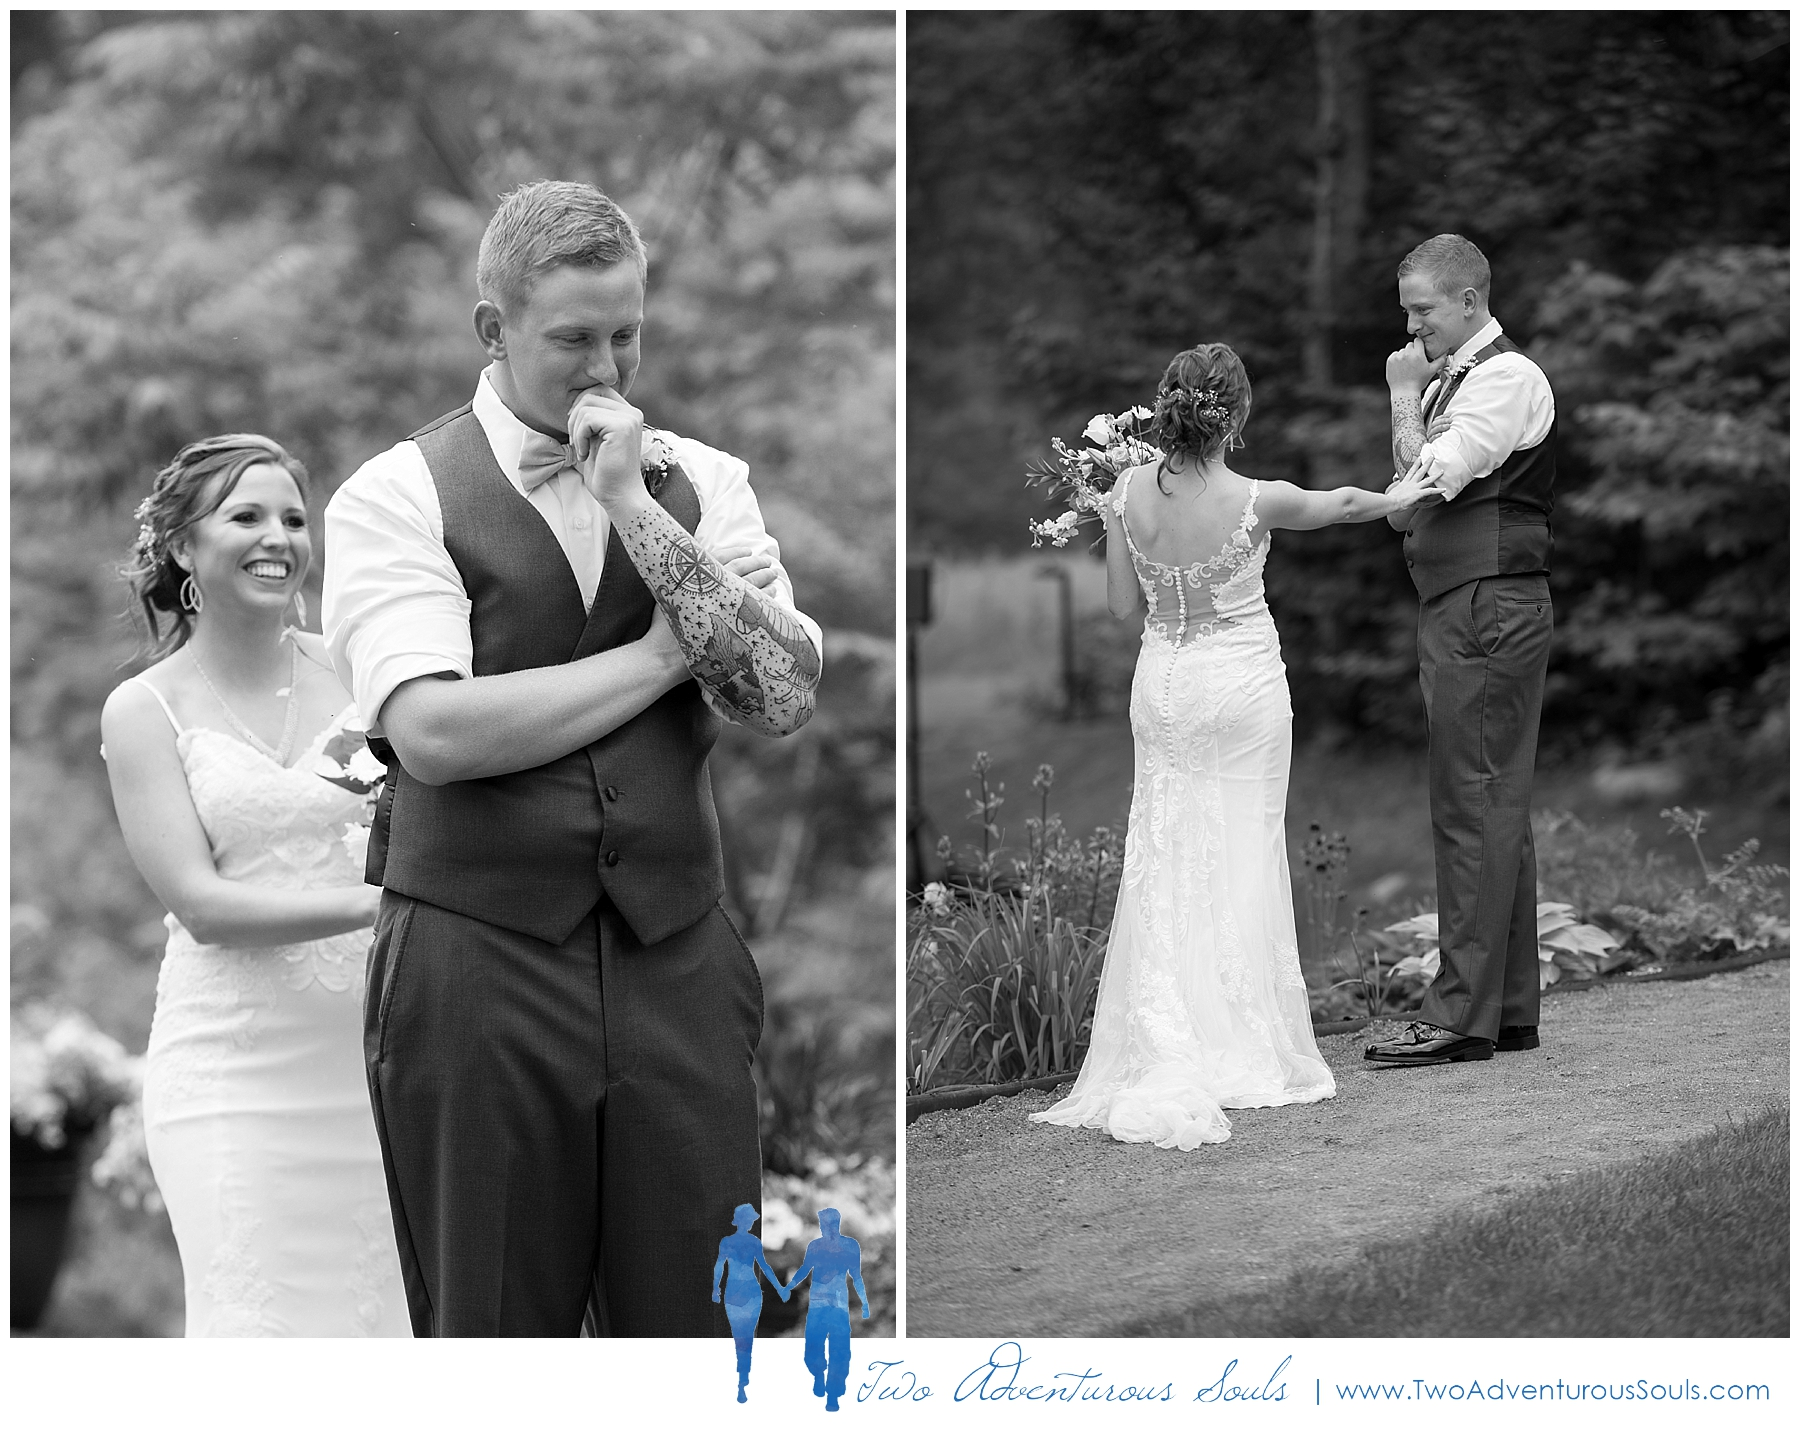 Sunday River Wedding, Maine Wedding Photographers - First Look at Sunday River